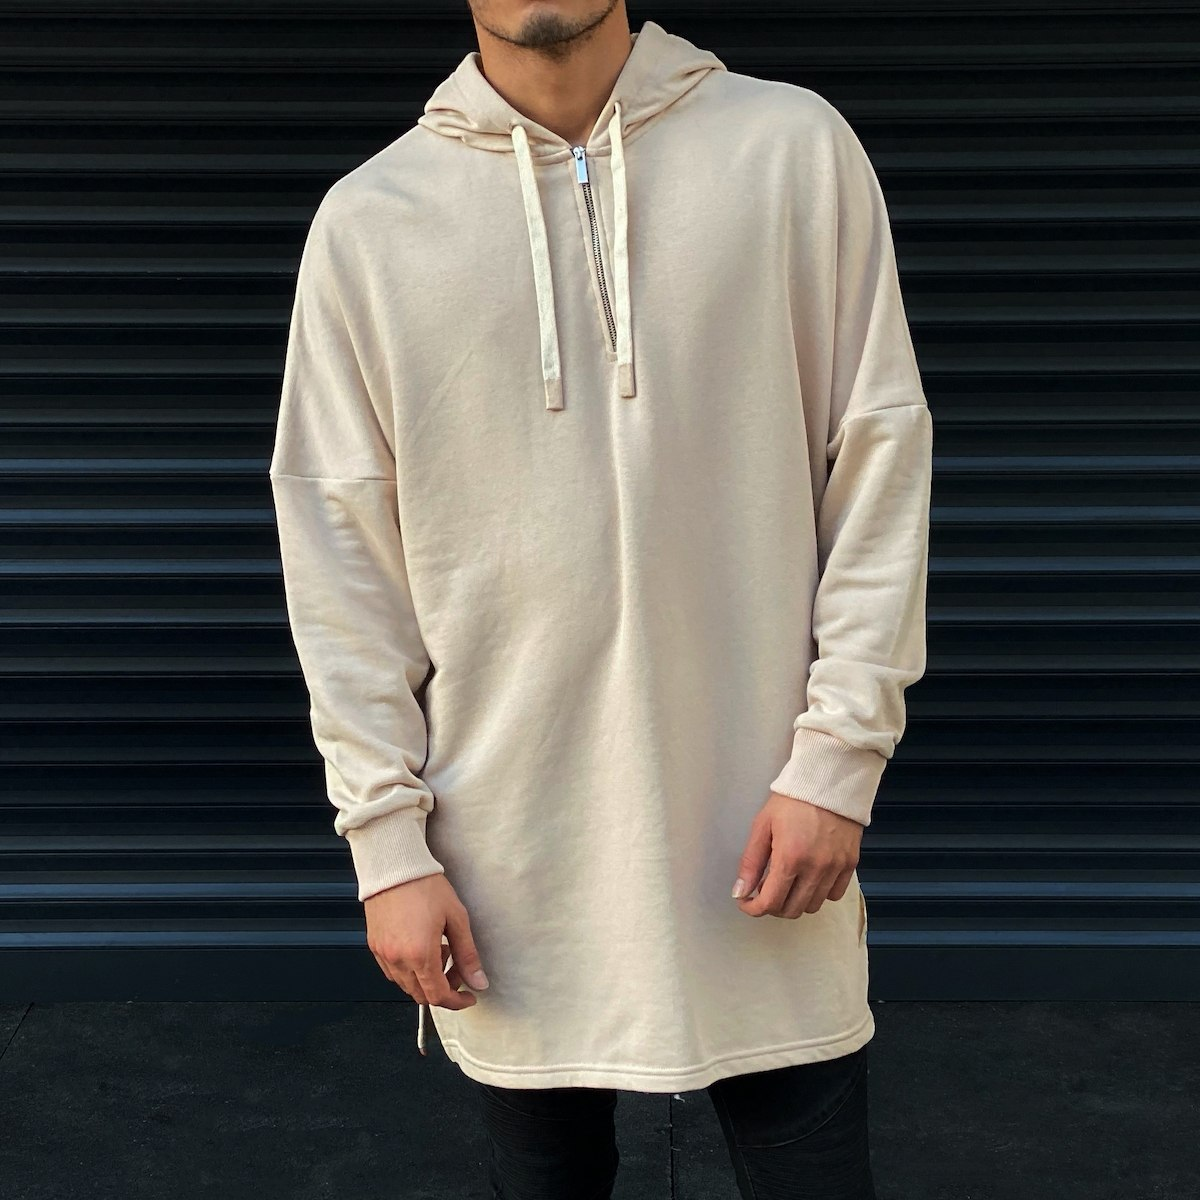 Men's Hooded Long Cut Sweatshirt In Beige